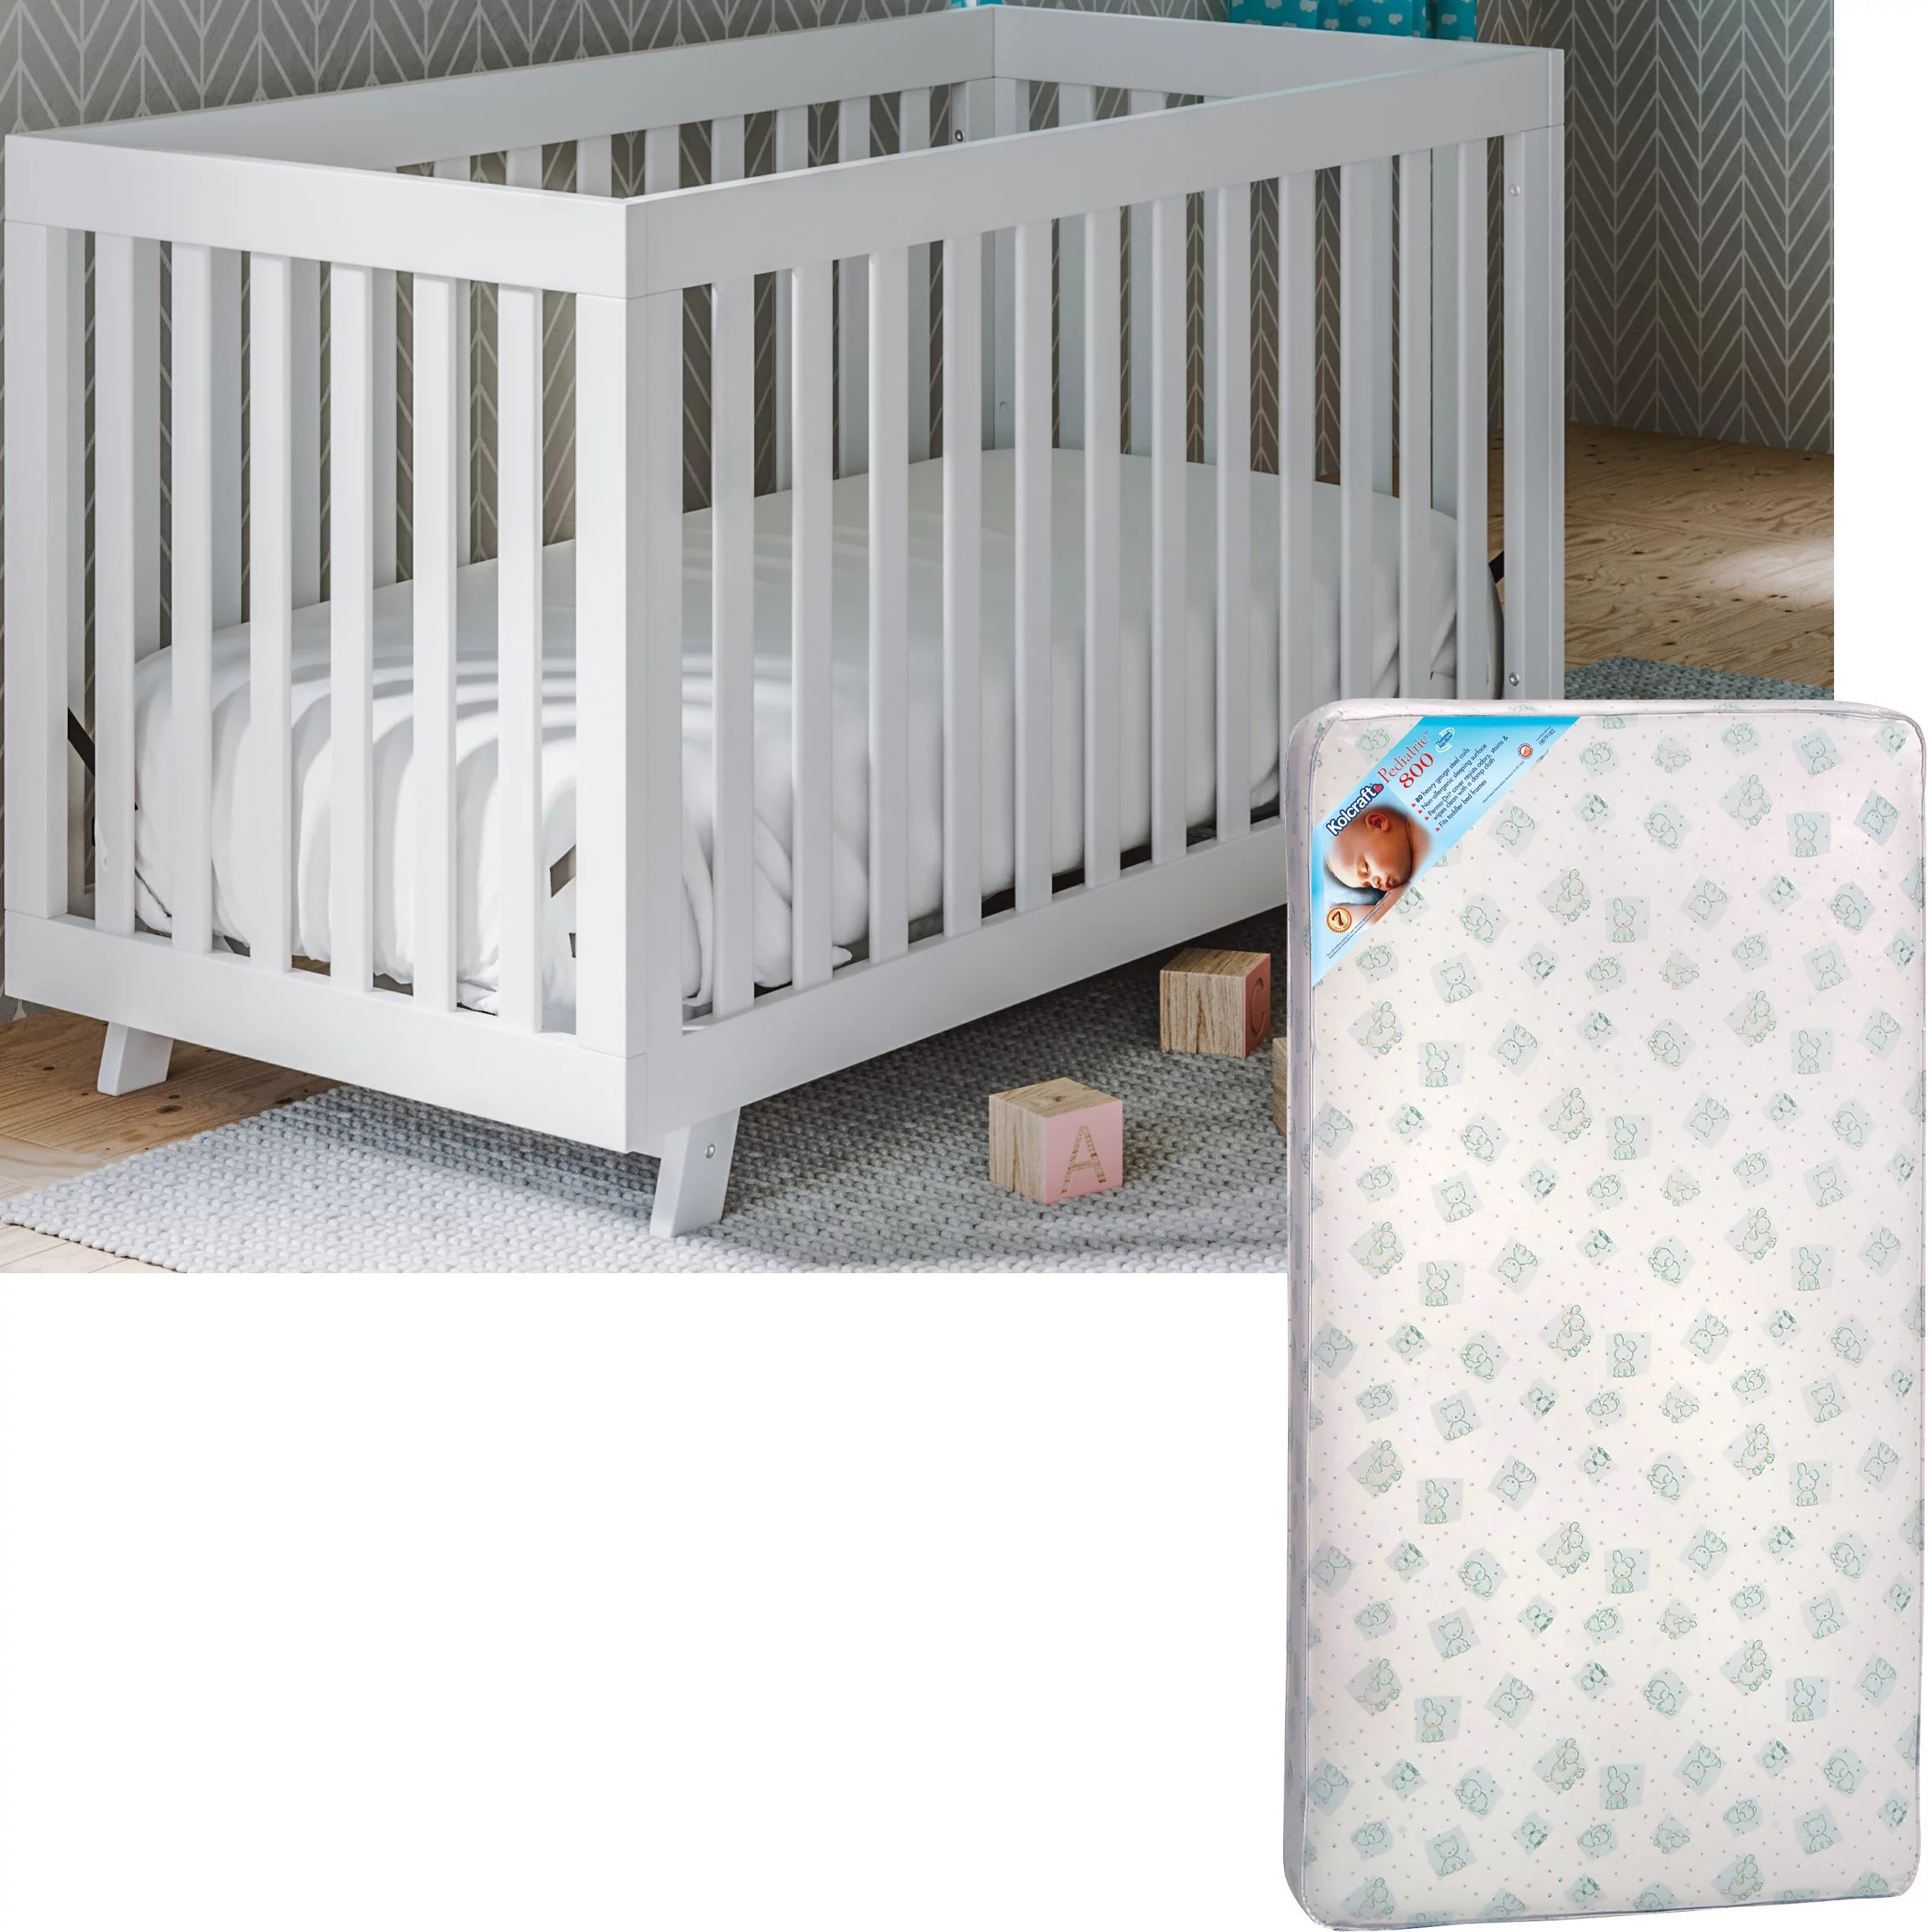 Used crib for sale edmonton baby crib for sale ottawa baby crib for sale ottawa